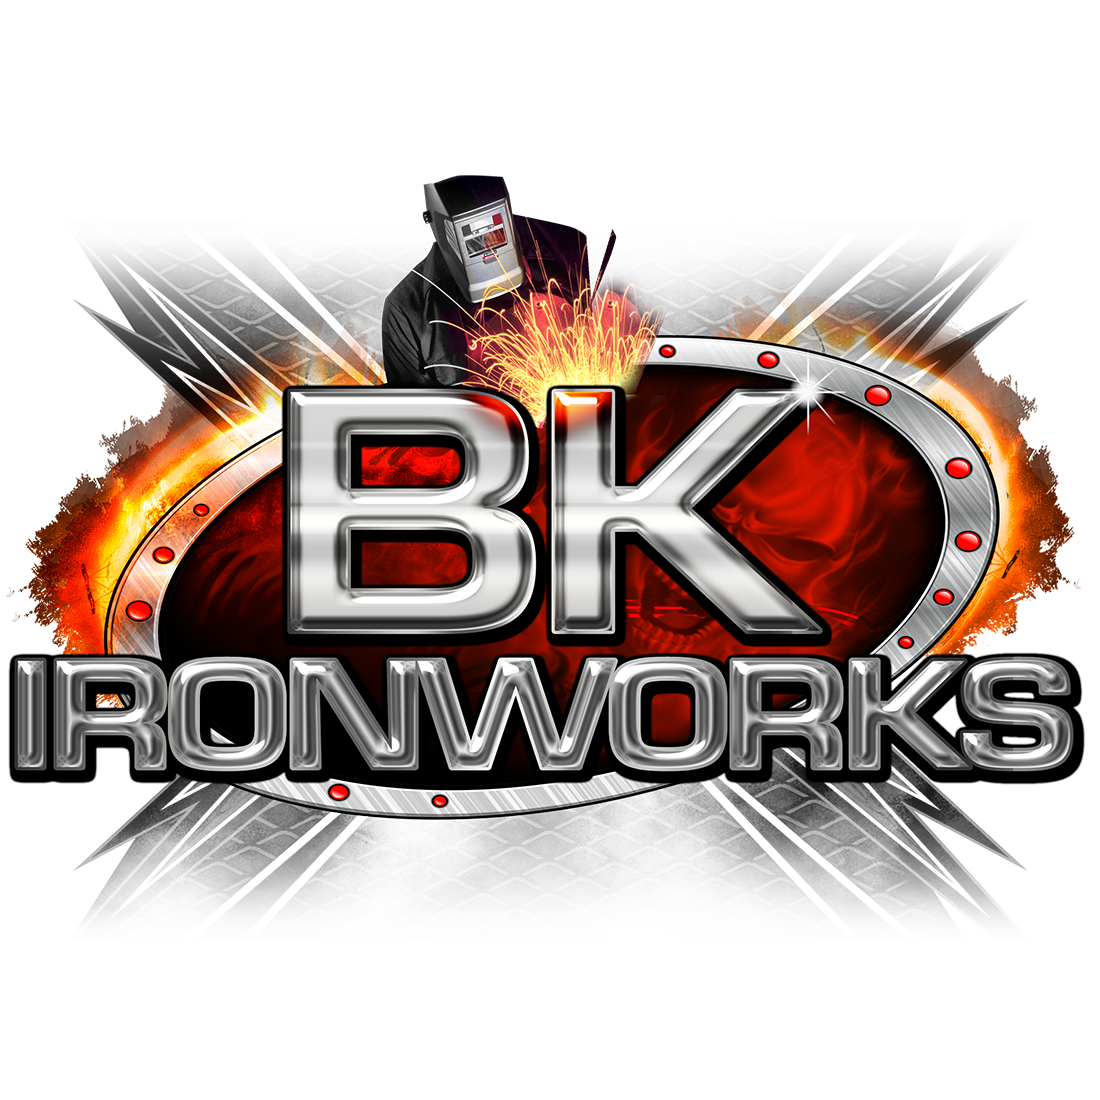 Bk Iron Works Corp.